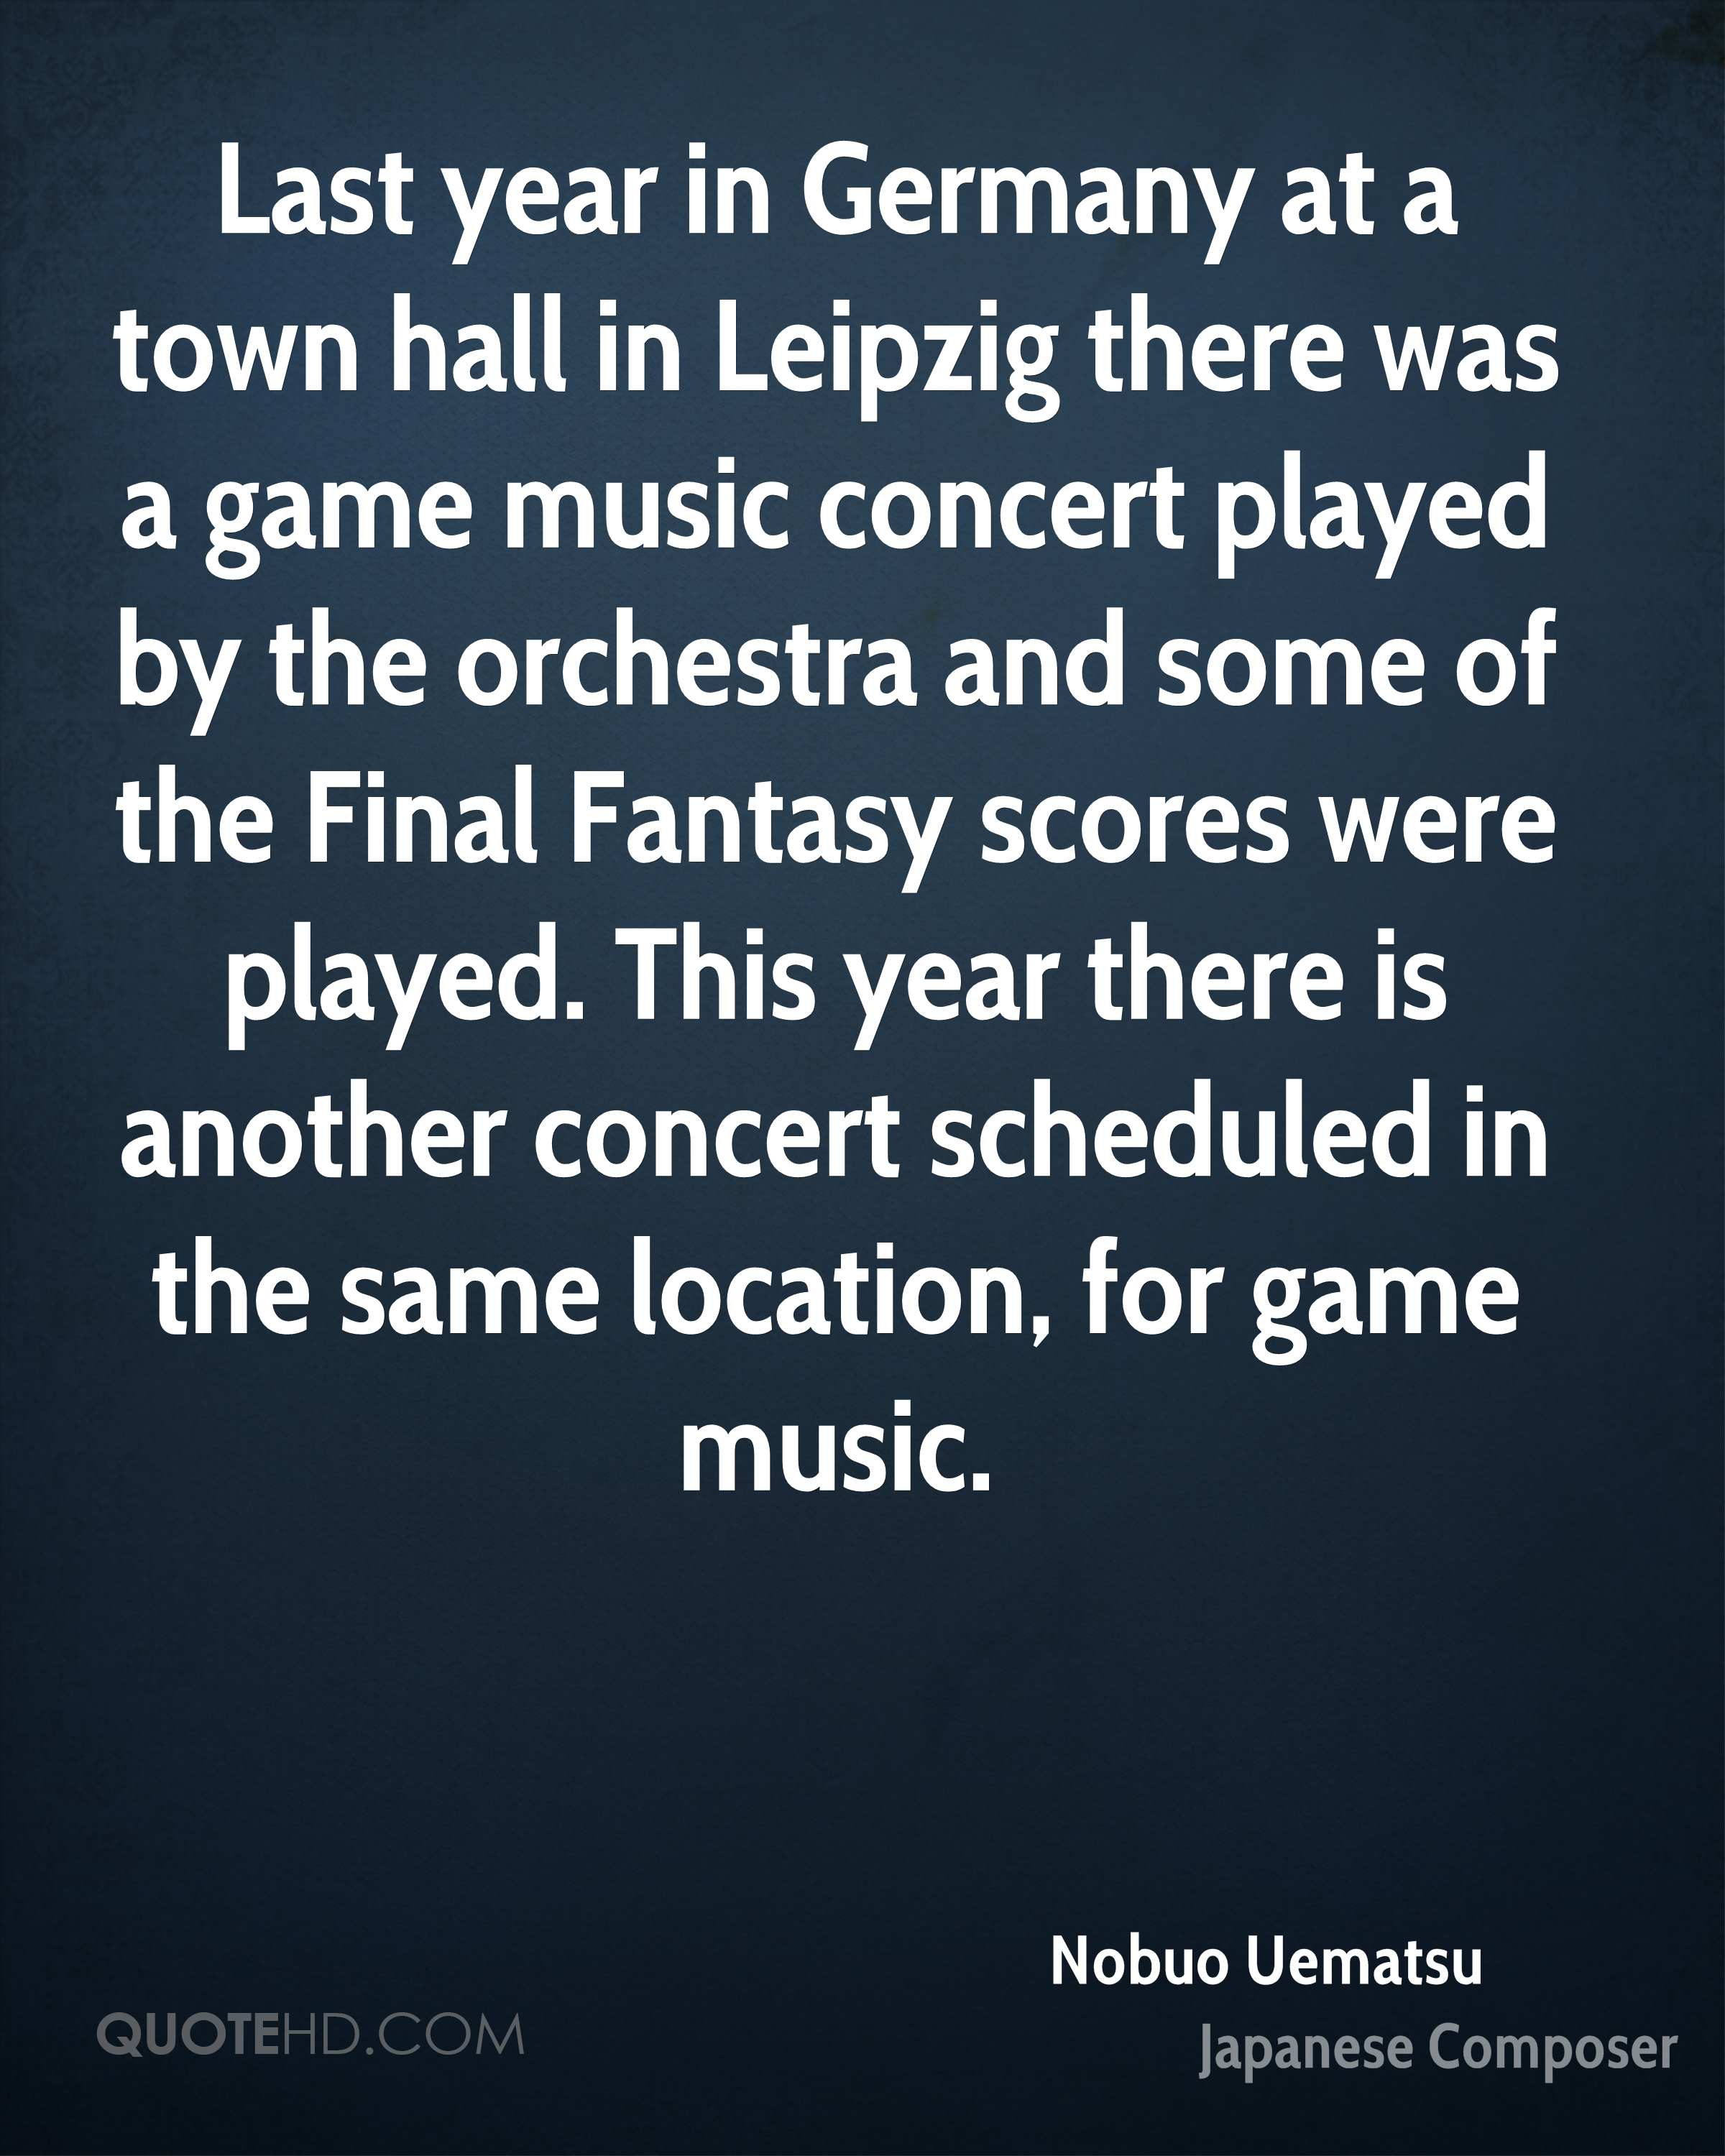 Last year in Germany at a town hall in Leipzig there was a game music concert played by the orchestra and some of the Final Fantasy scores were played. This year there is another concert scheduled in the same location, for game music.